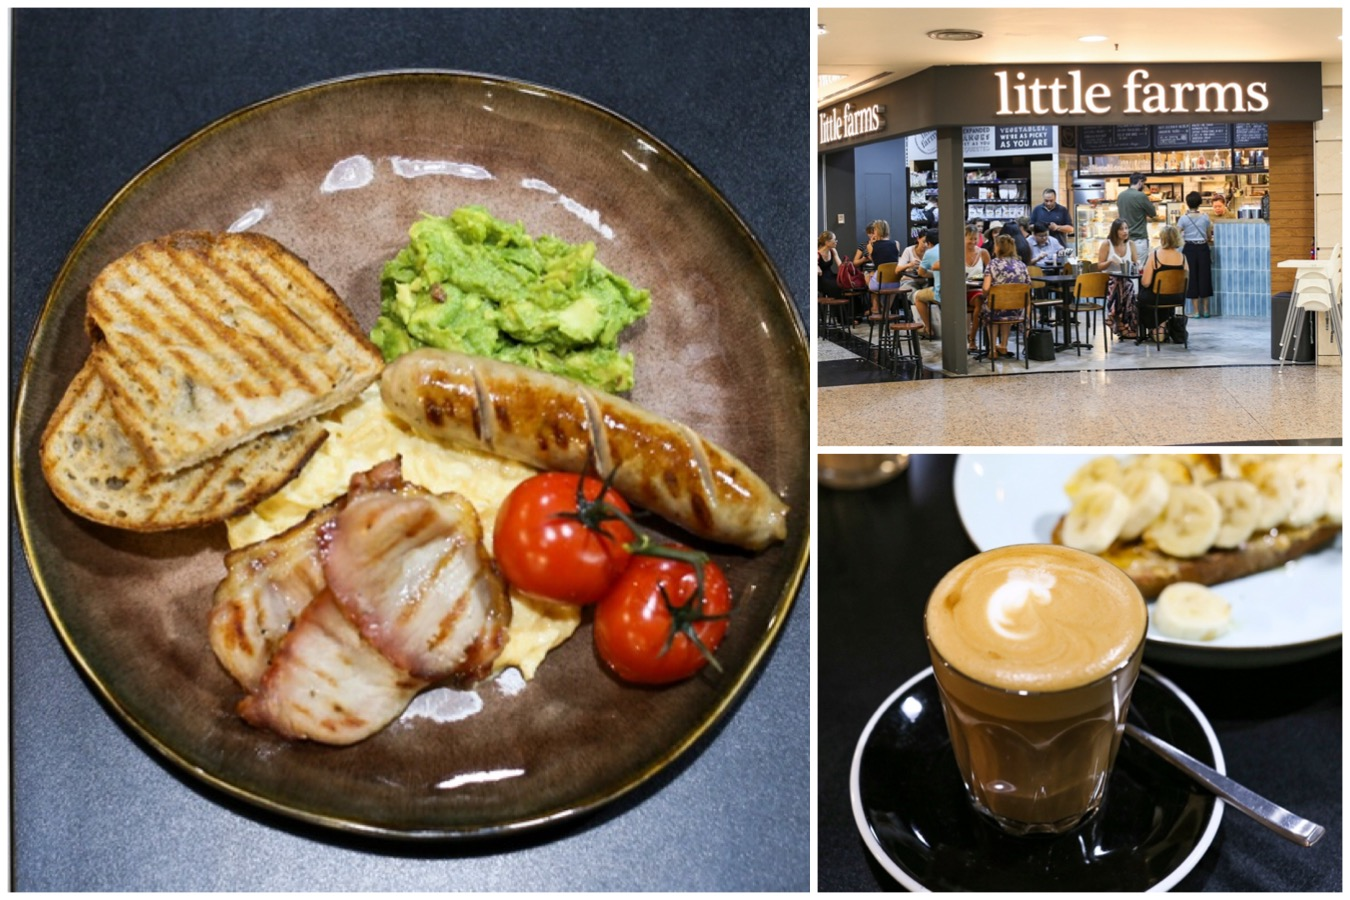 Little Farms Cafe All Day Breakfast And Brunch Made With Fresh Produce At River Valley Danielfooddiary Com